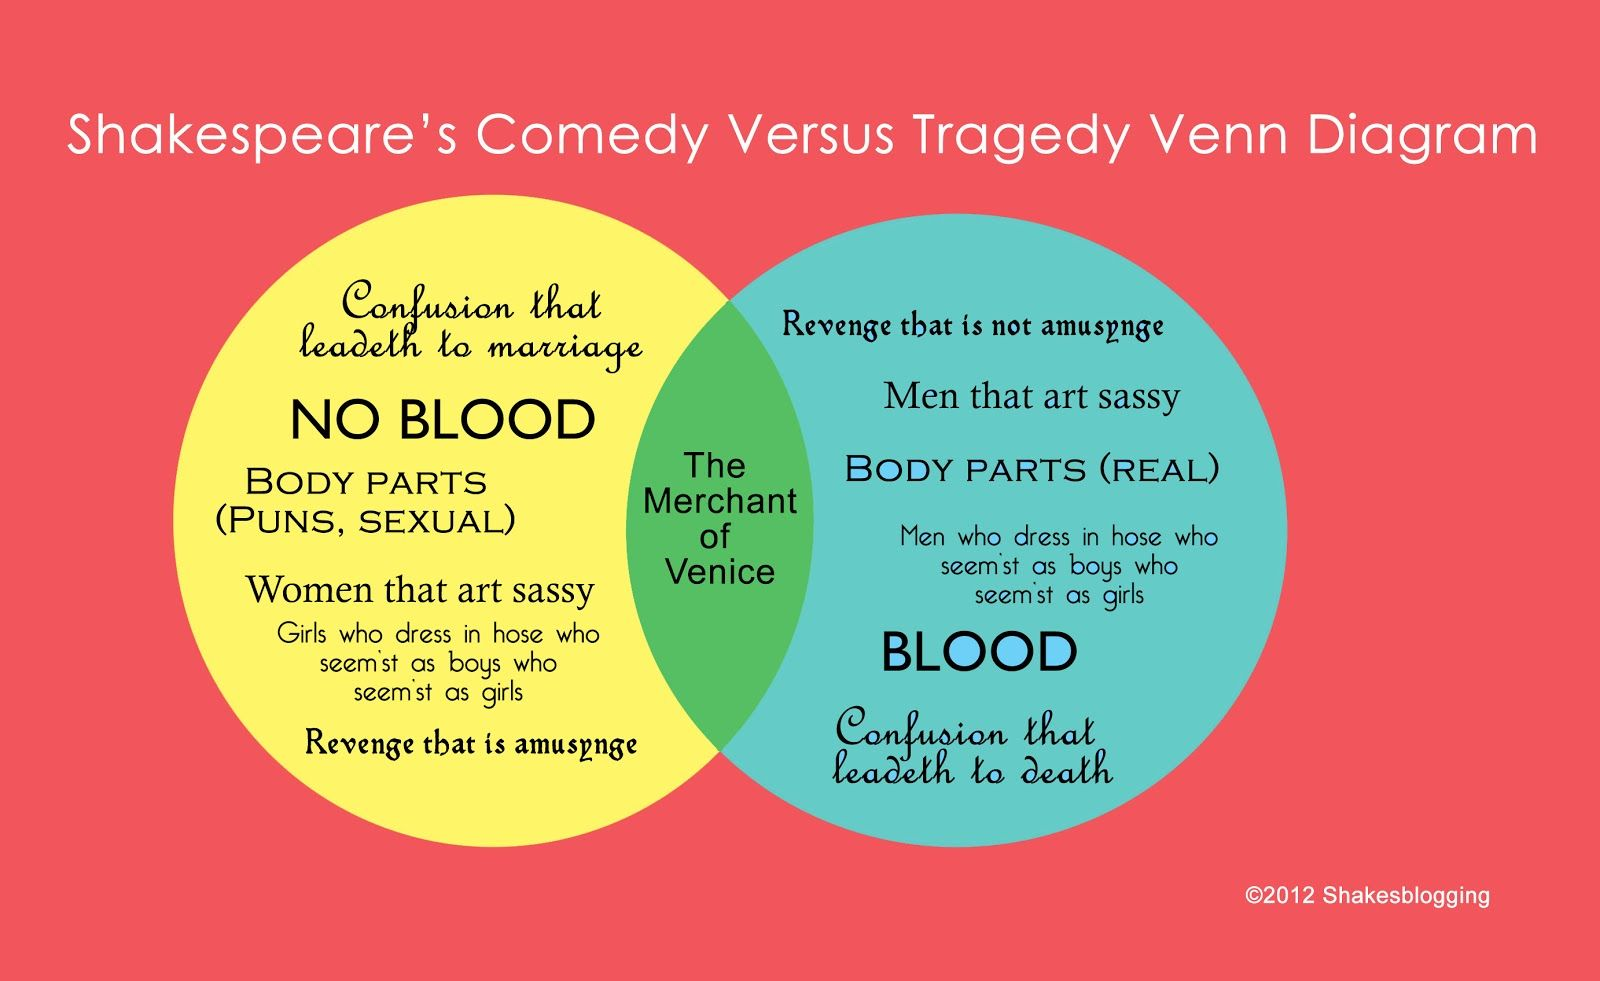 Shakesblogging comedy versus tragedy venn diagram history shakesblogging comedy versus tragedy venn diagram pooptronica Images